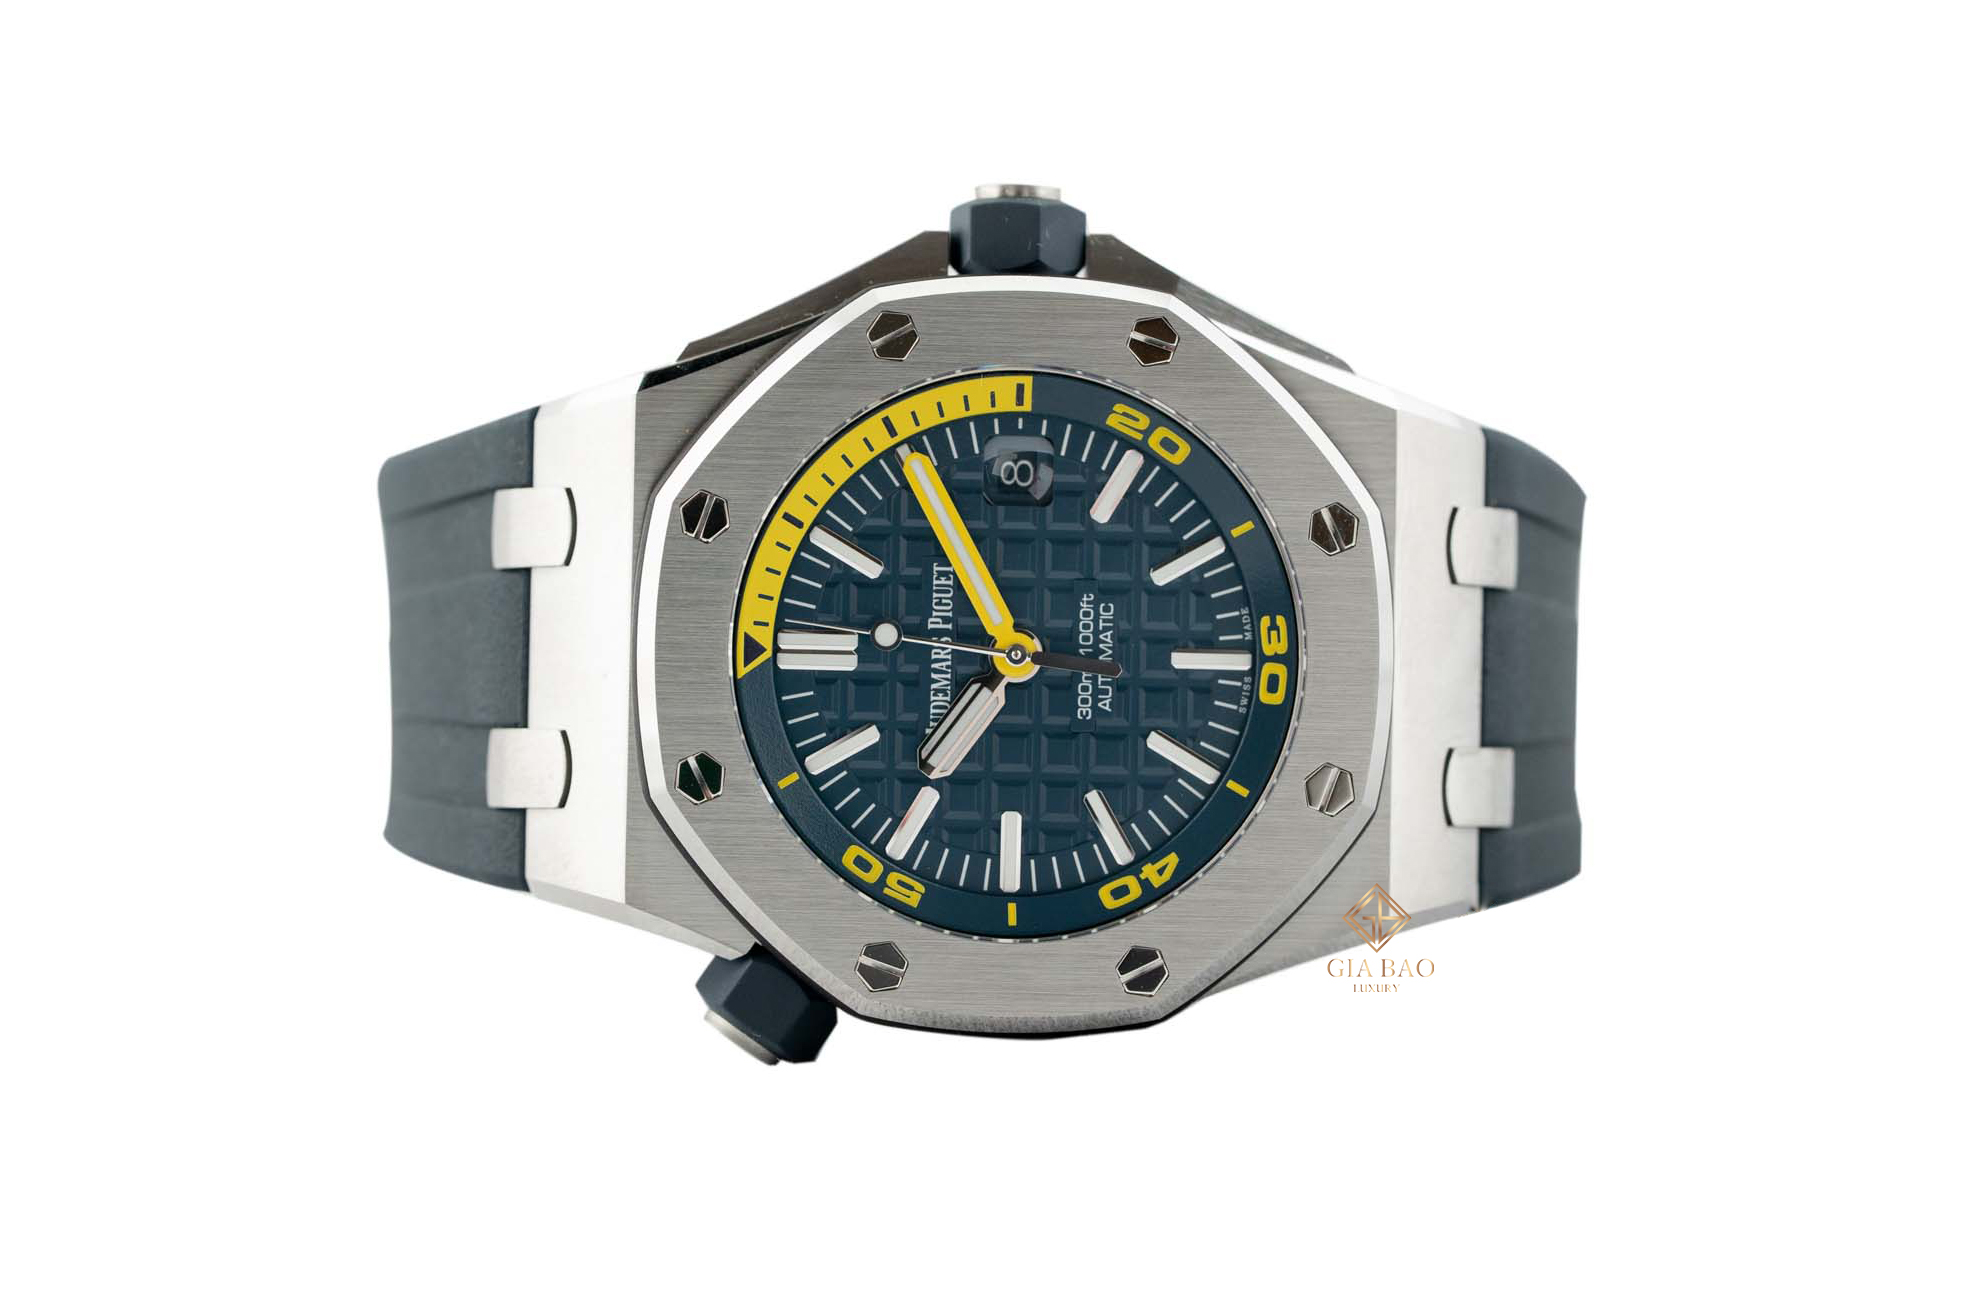 Audemars Piguet Royal Oak Offshore Selfwinding Chronograph 26470ST.OO.A028CR.01